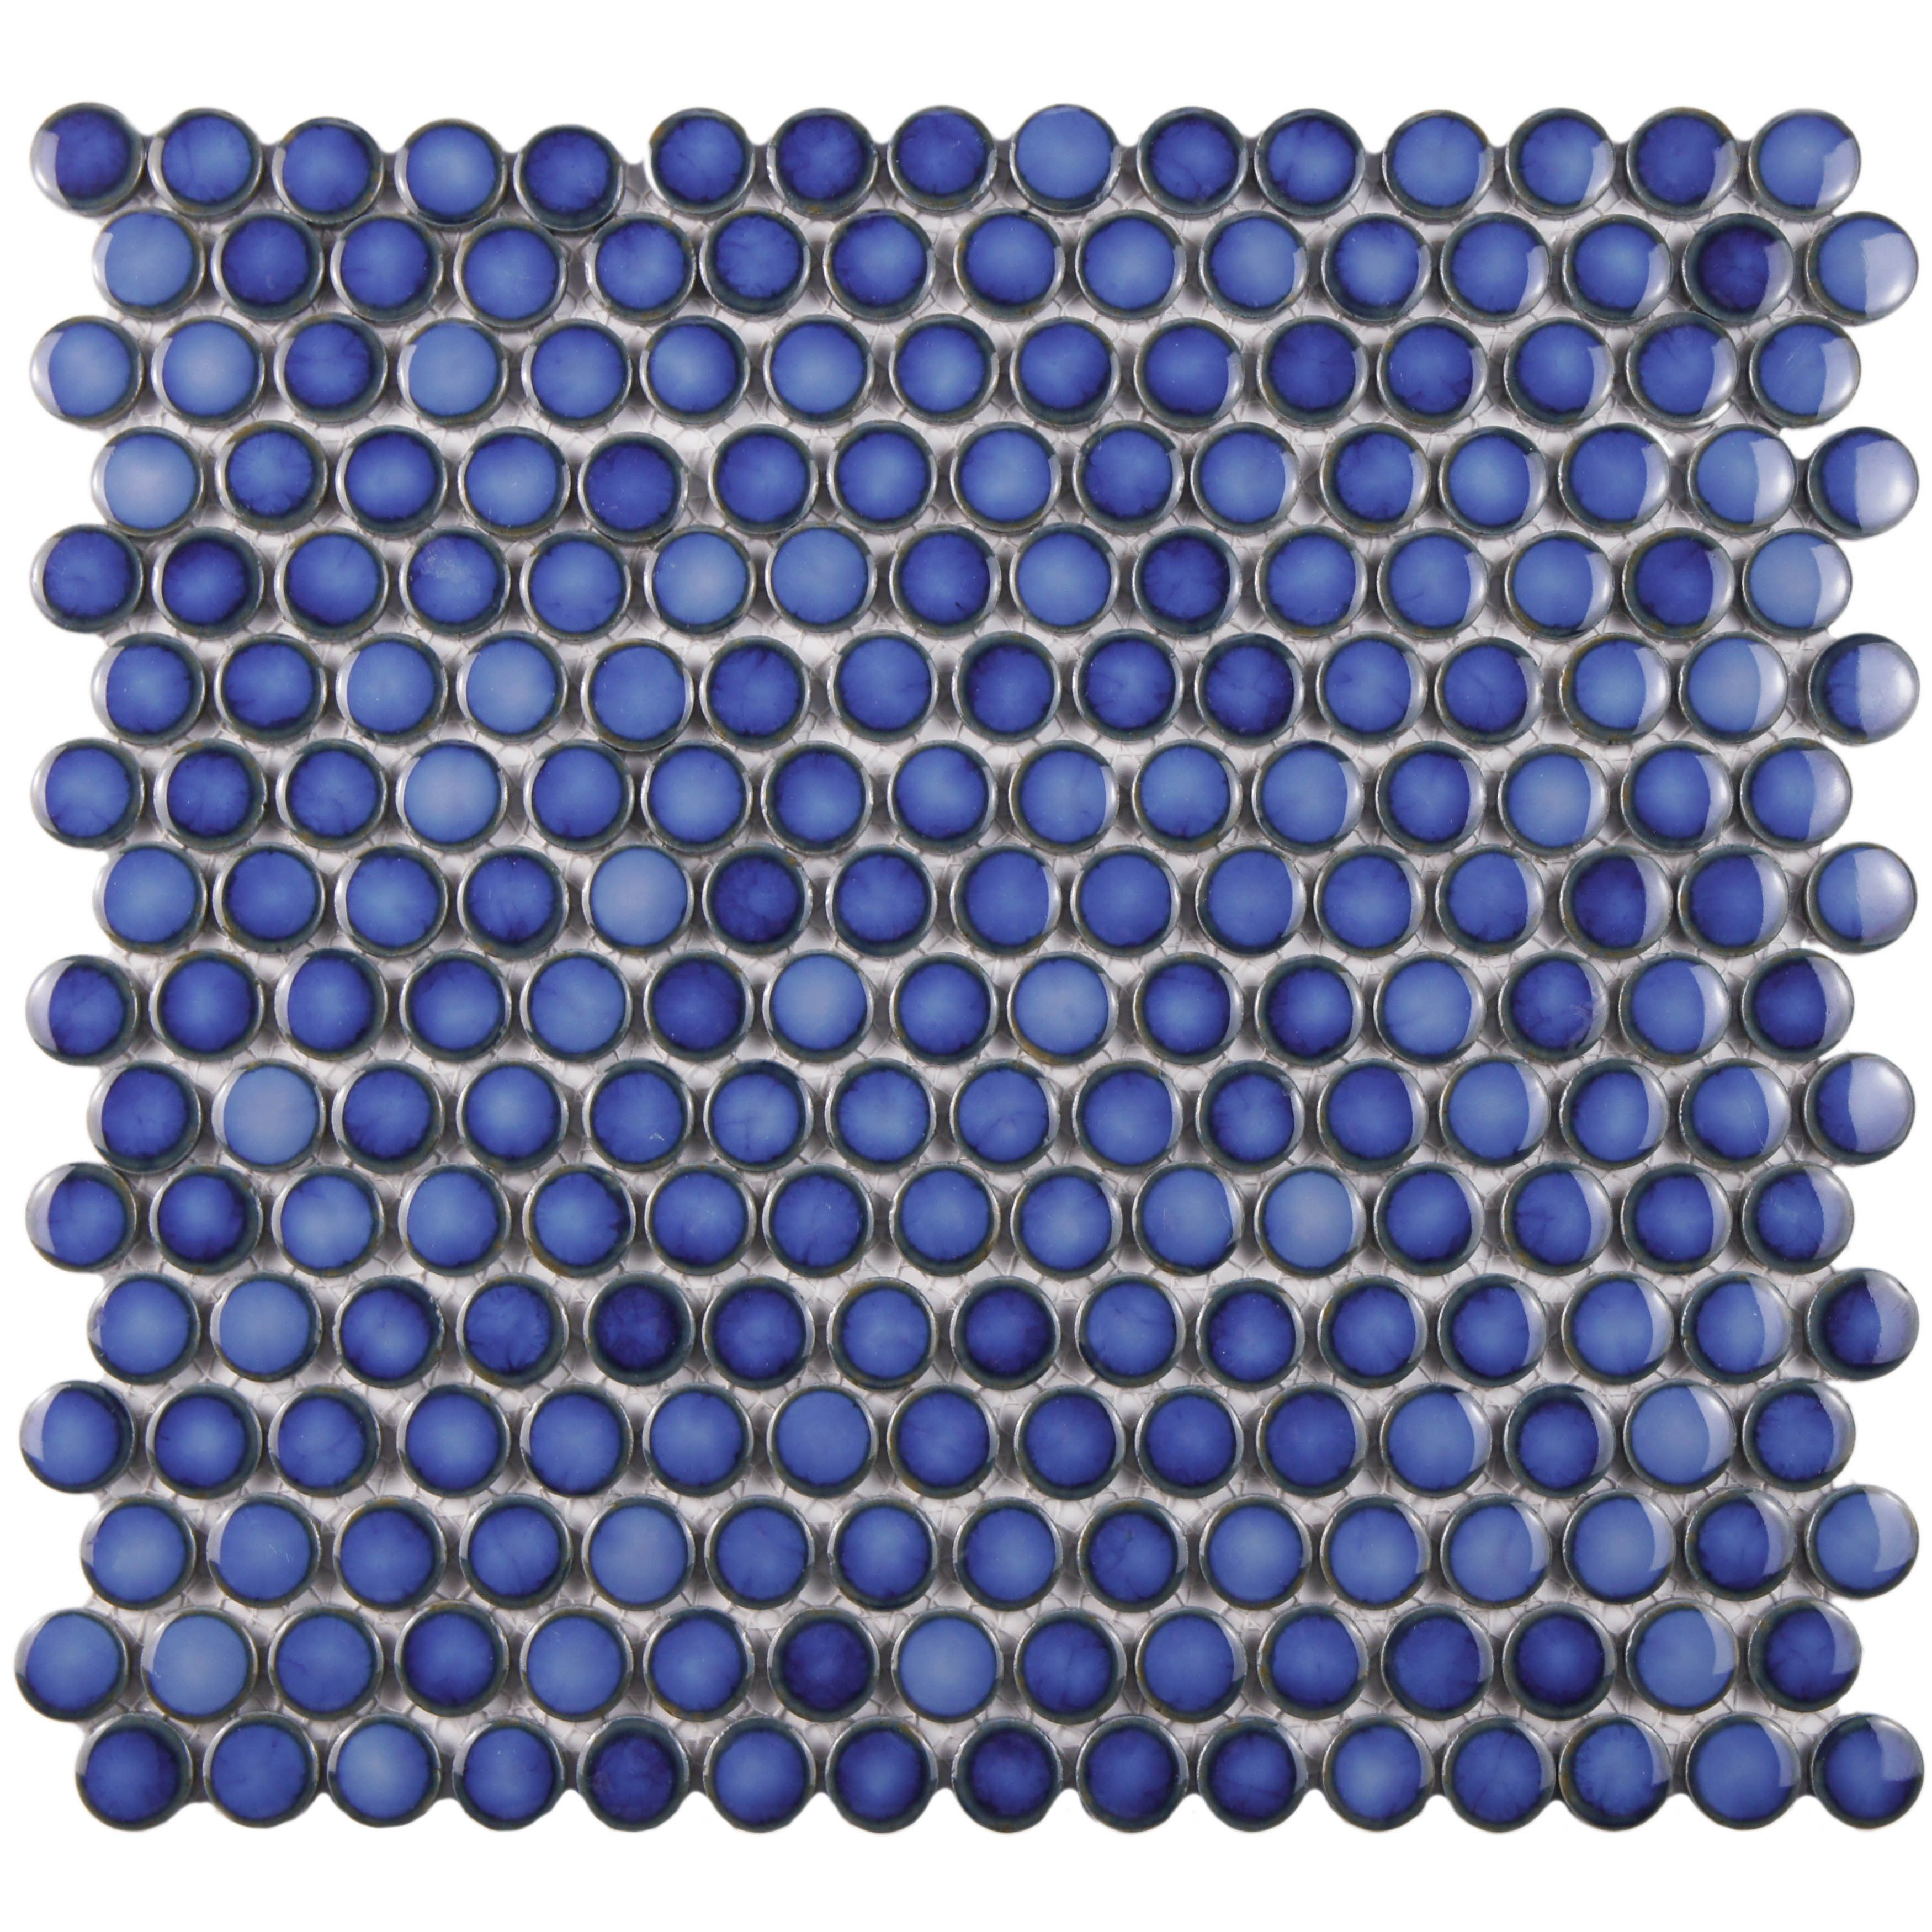 The SomerTile 12x12.25-inch Penny Sapphire Glossy Porcelain Mosaic ...